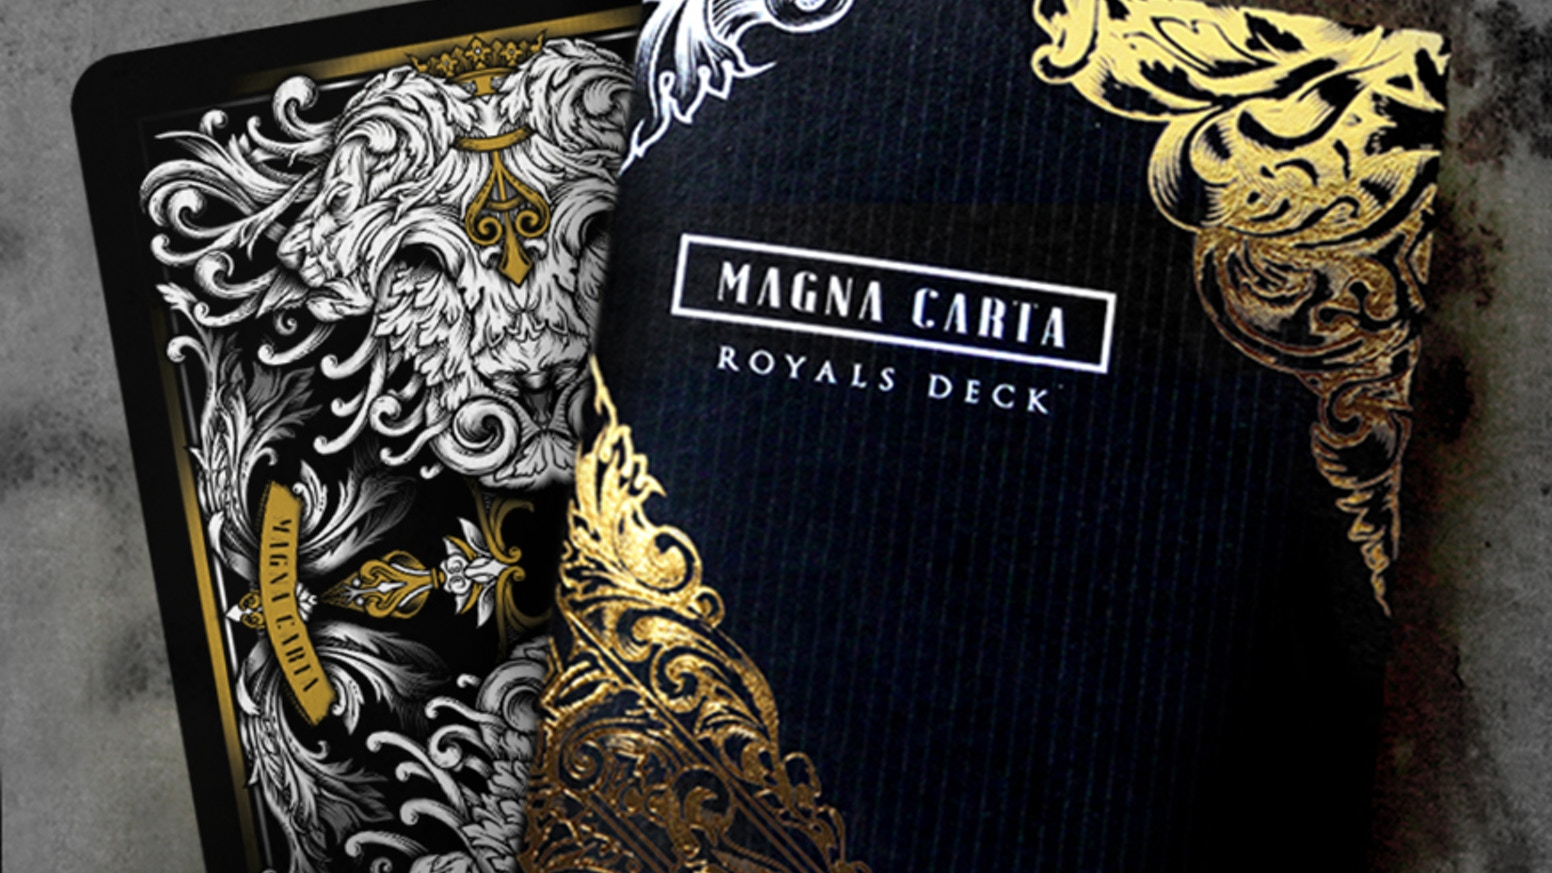 Celebrate this momentous anniversary of the Magna Carta with this limited edition luxury playing card set printed by the USPCC.